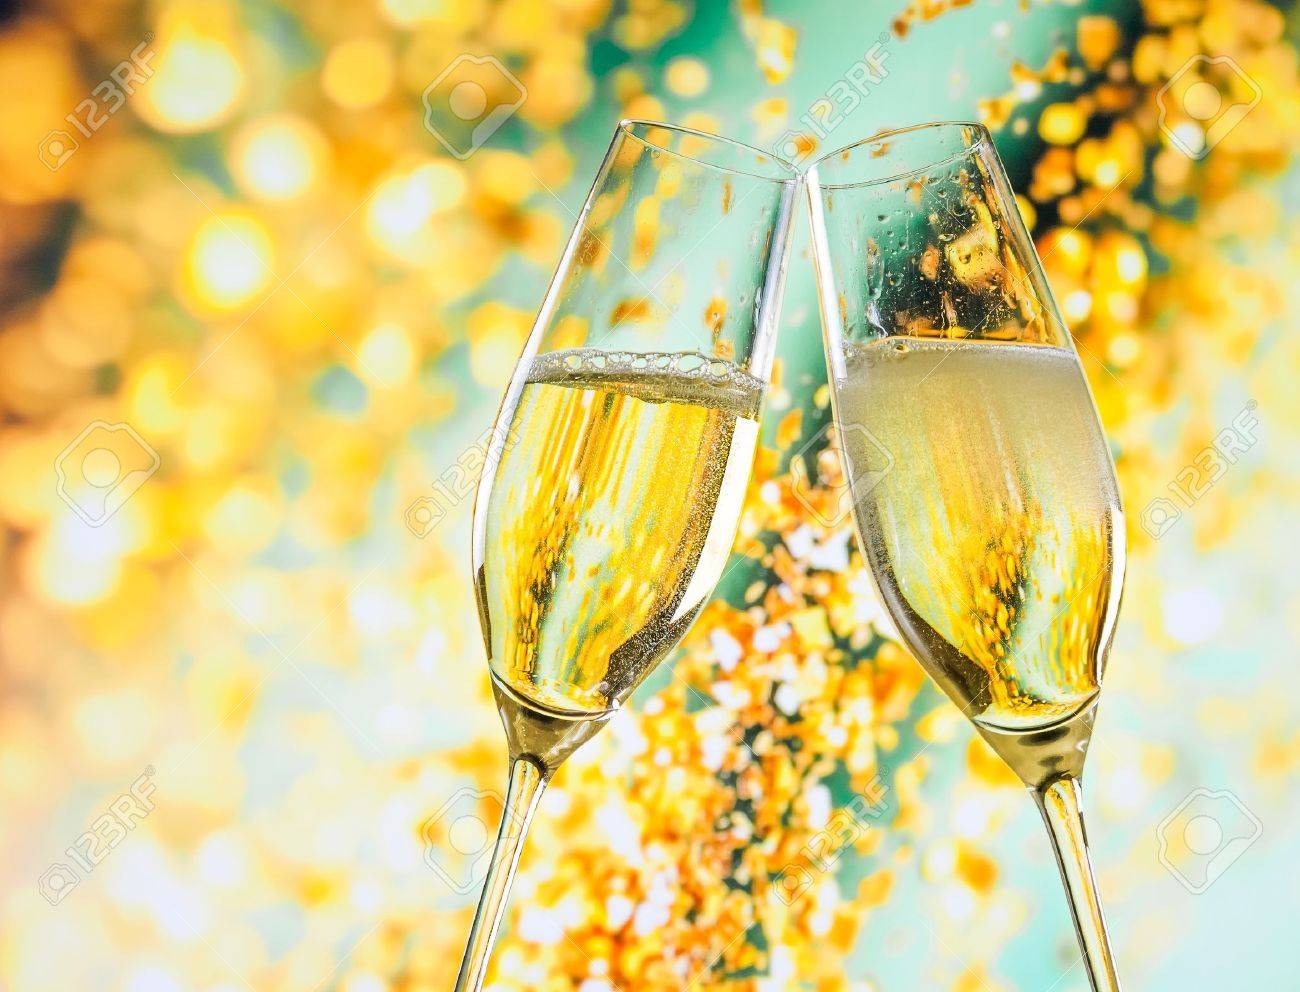 a pair of champagne flutes with golden bubbles make cheers on